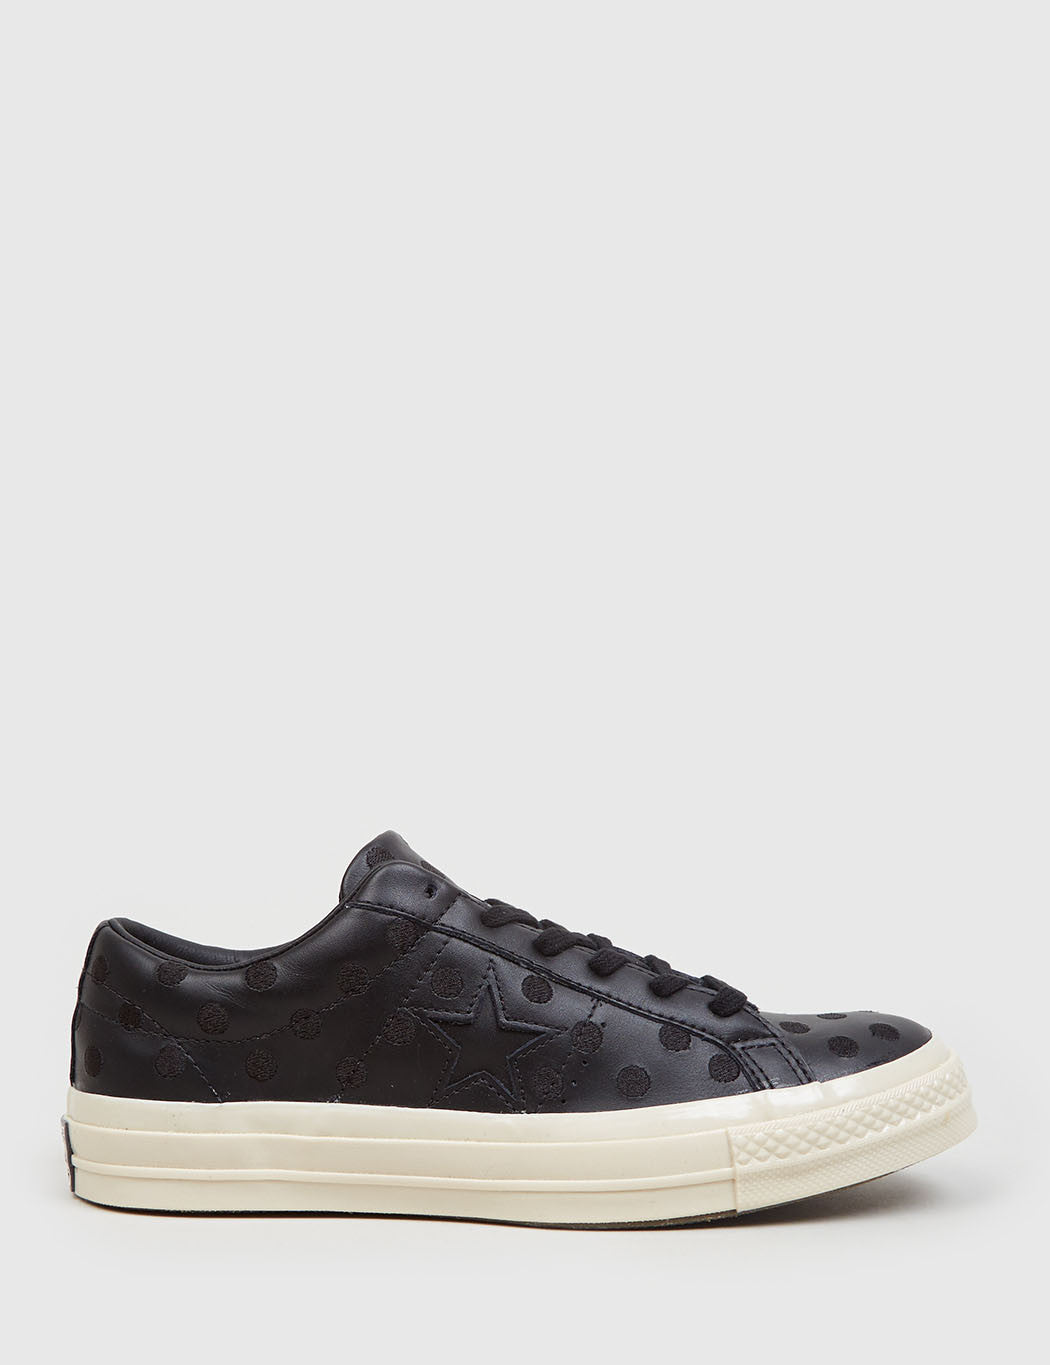 9c5139e46a3b54 Converse One Star  74 (Polkadot Leather) - Black